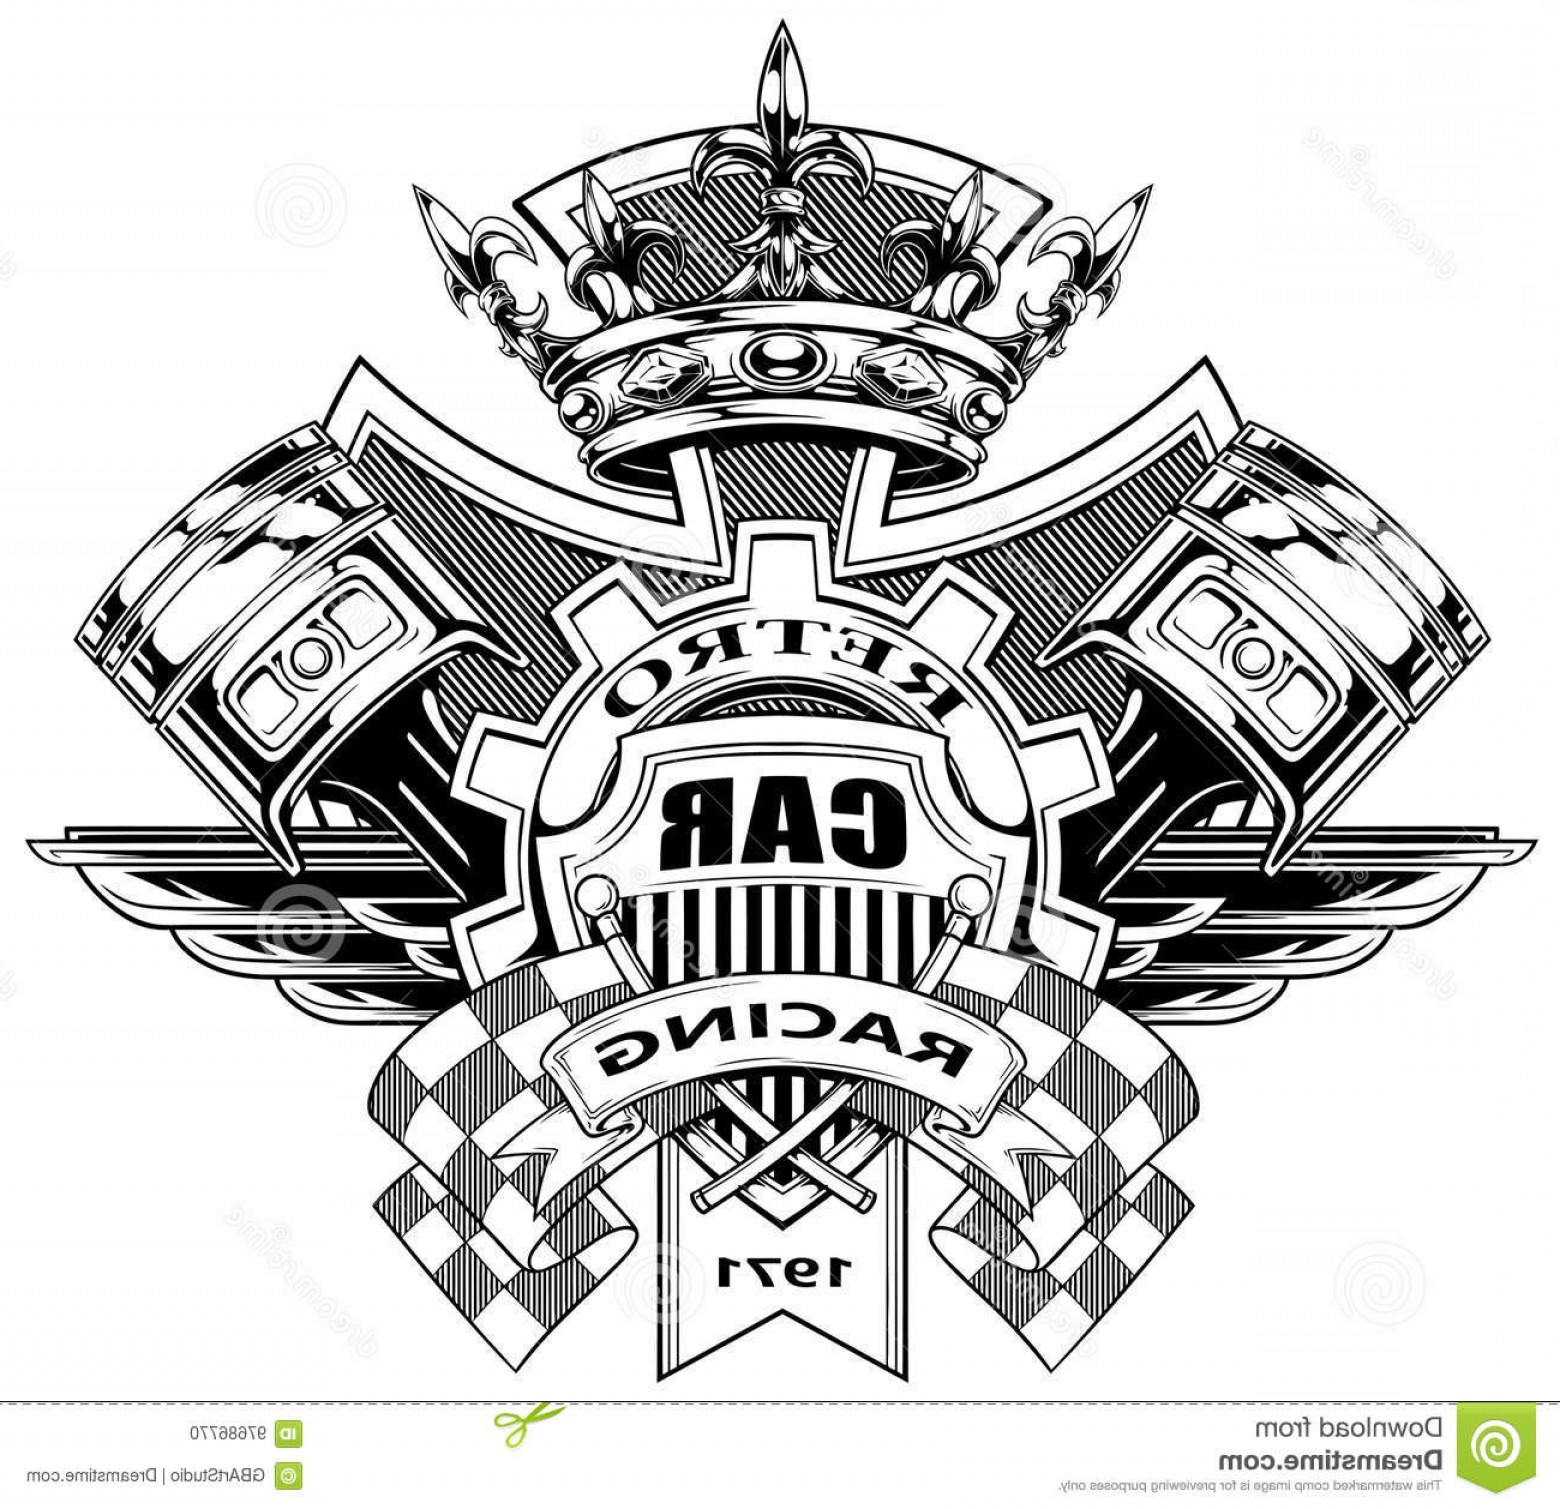 Black And White Vector Racing Graphics: Stock Illustration Graphic Coat Arms Pistons Racing Flags Black White Crossed Flag Royal Diamond Crown Gear Wings Vector Image